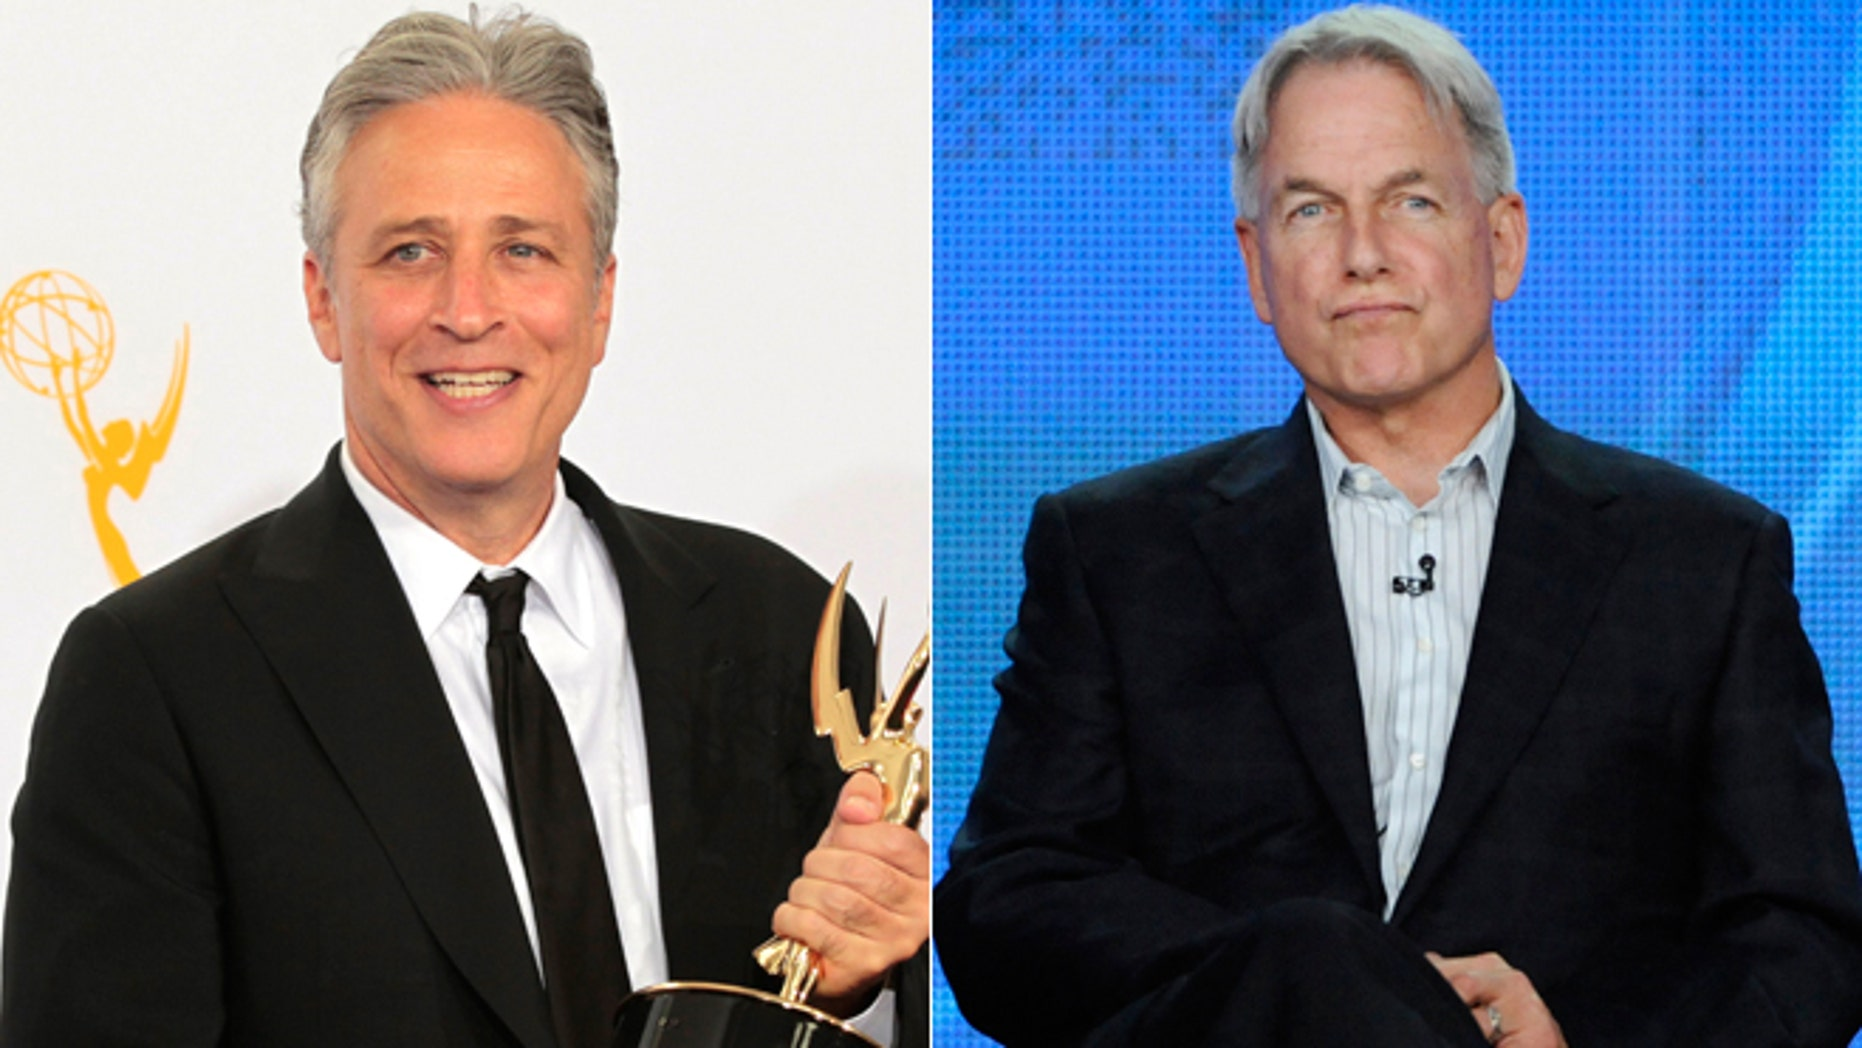 Jon Stewart, left, and Mark Harmon are some of the highest paid stars on TV in 2013, according to TV Guide Magazine.